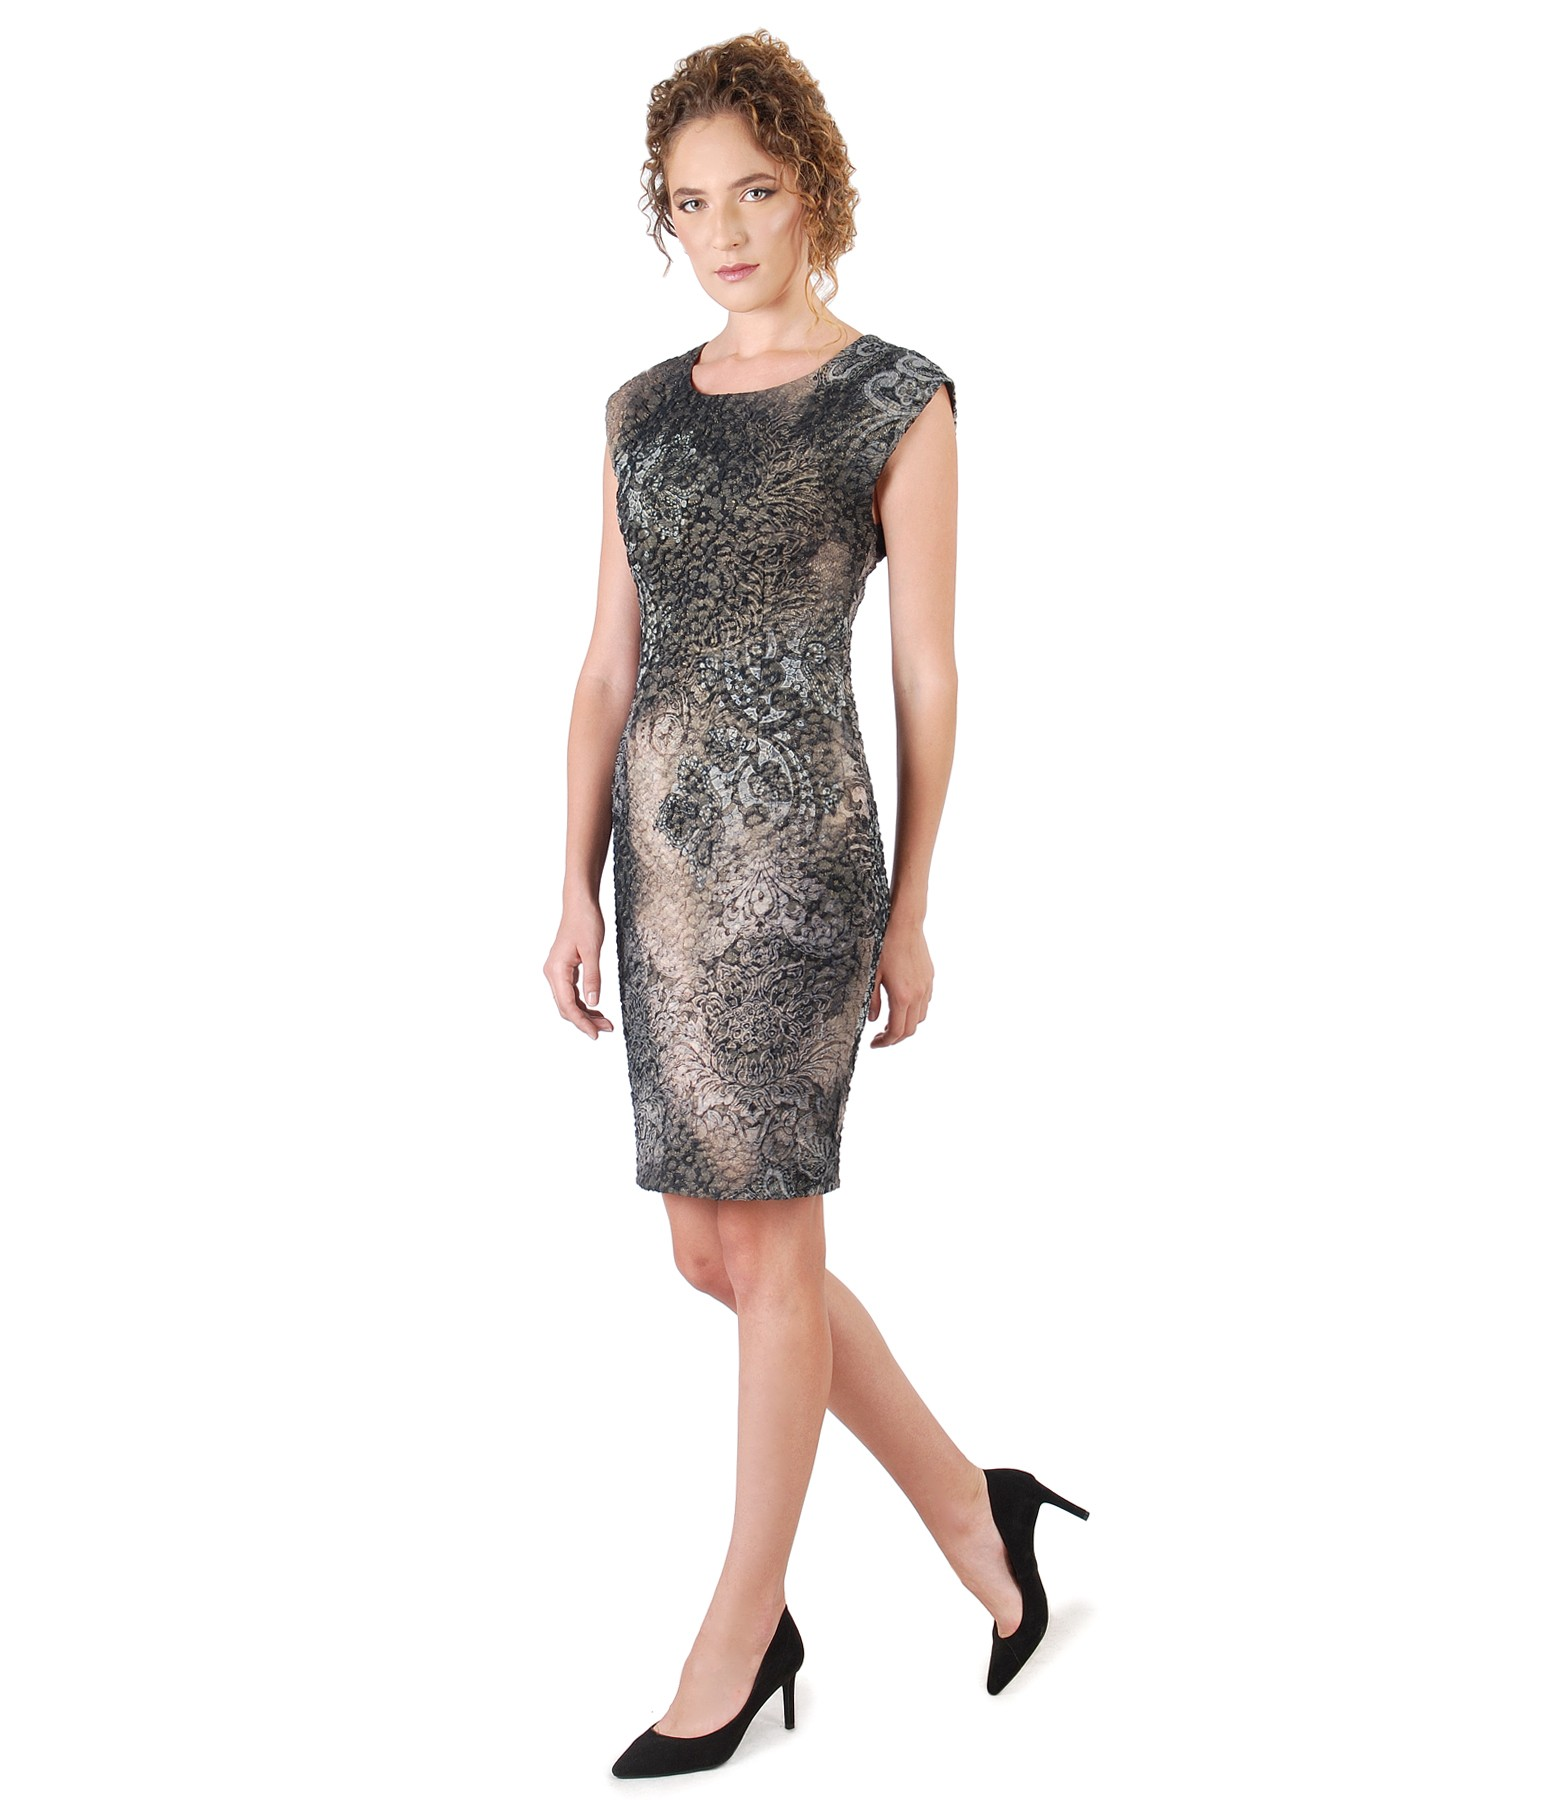 Elastic Brocade Dress With Gold Metallic Thread Print Yokko